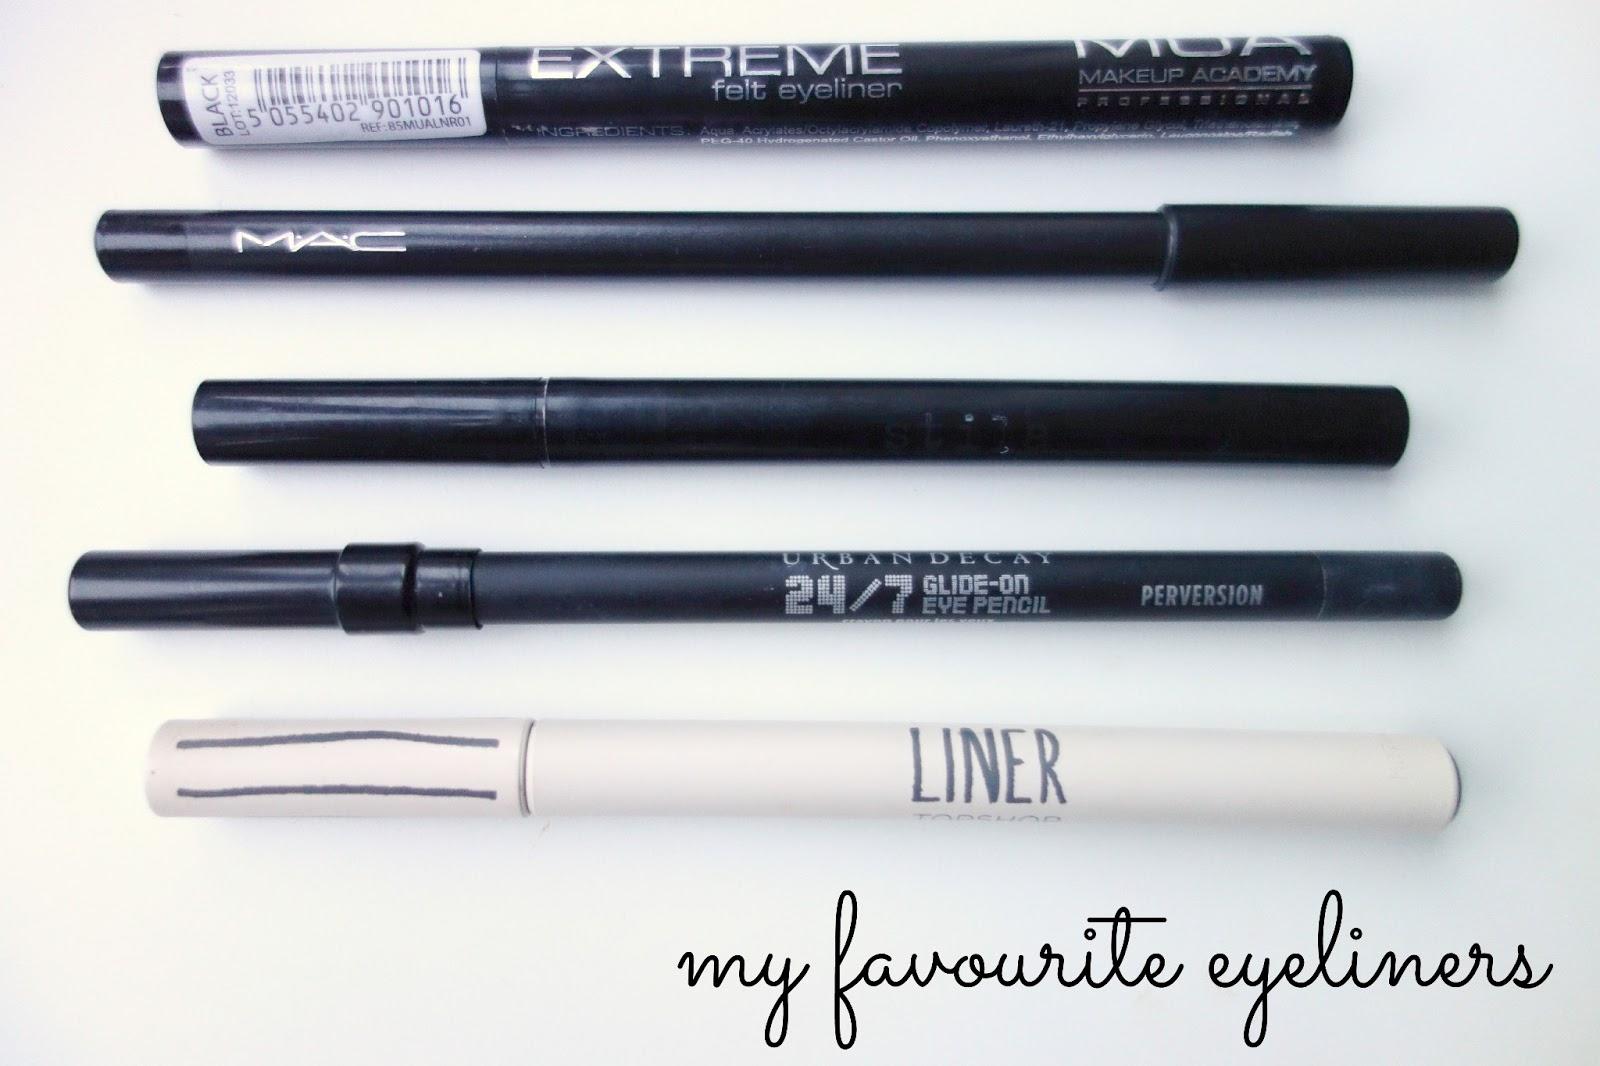 mua felt eyeliner pen, mac khol in smoulder, stila stay all day eyeliner pen, urban decay 24/7 pencil, topshop eyeliner